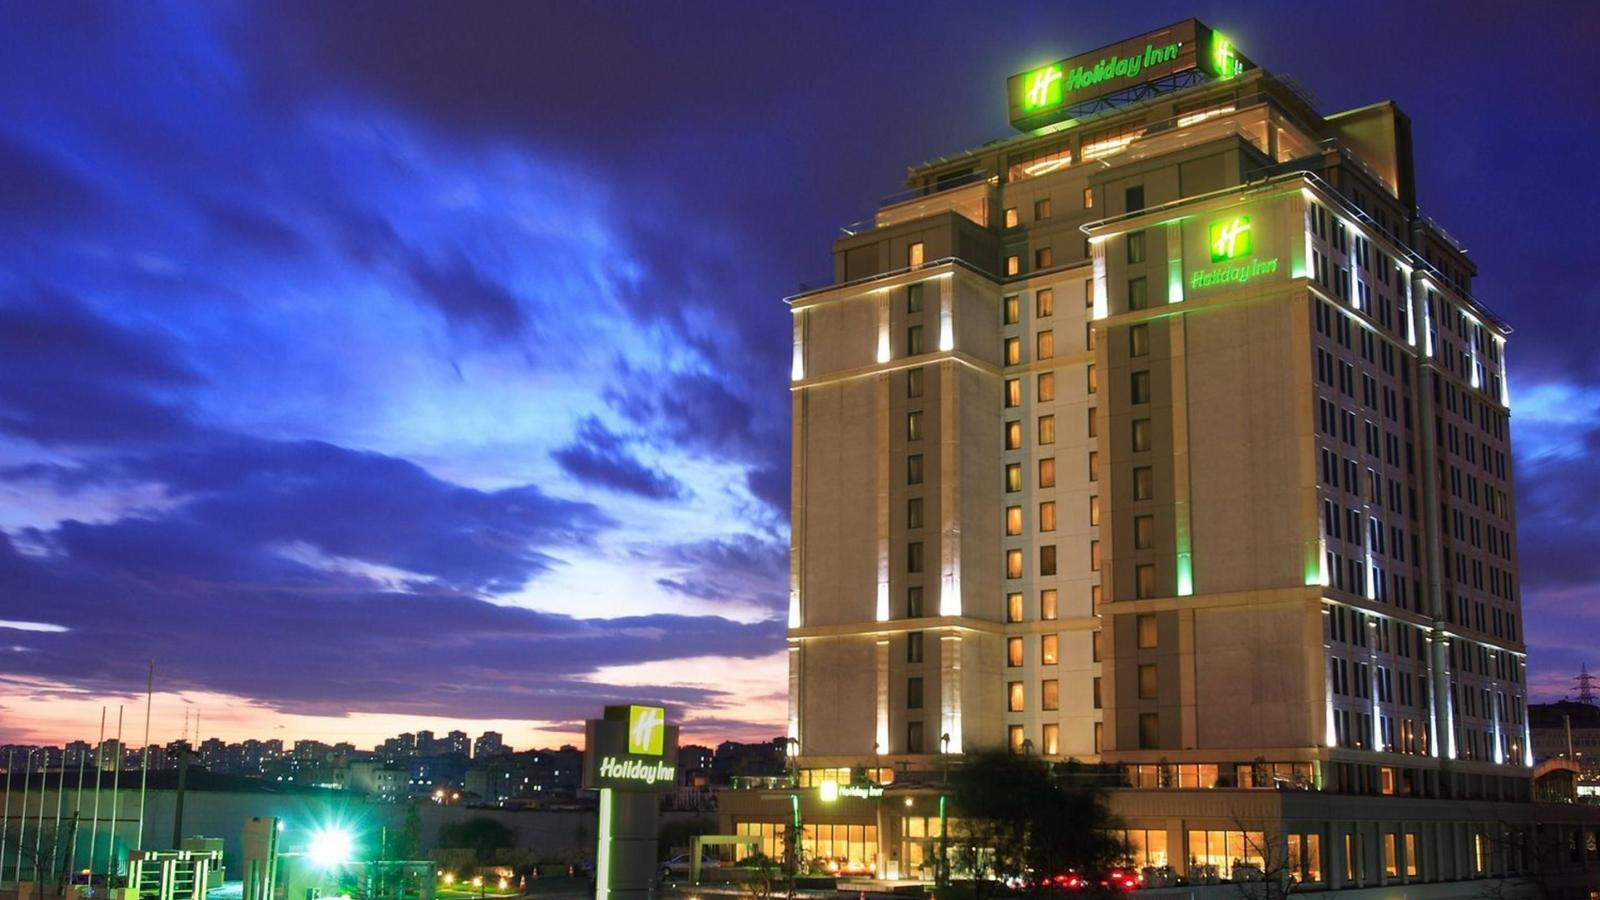 Хотел Holiday Inn 5*